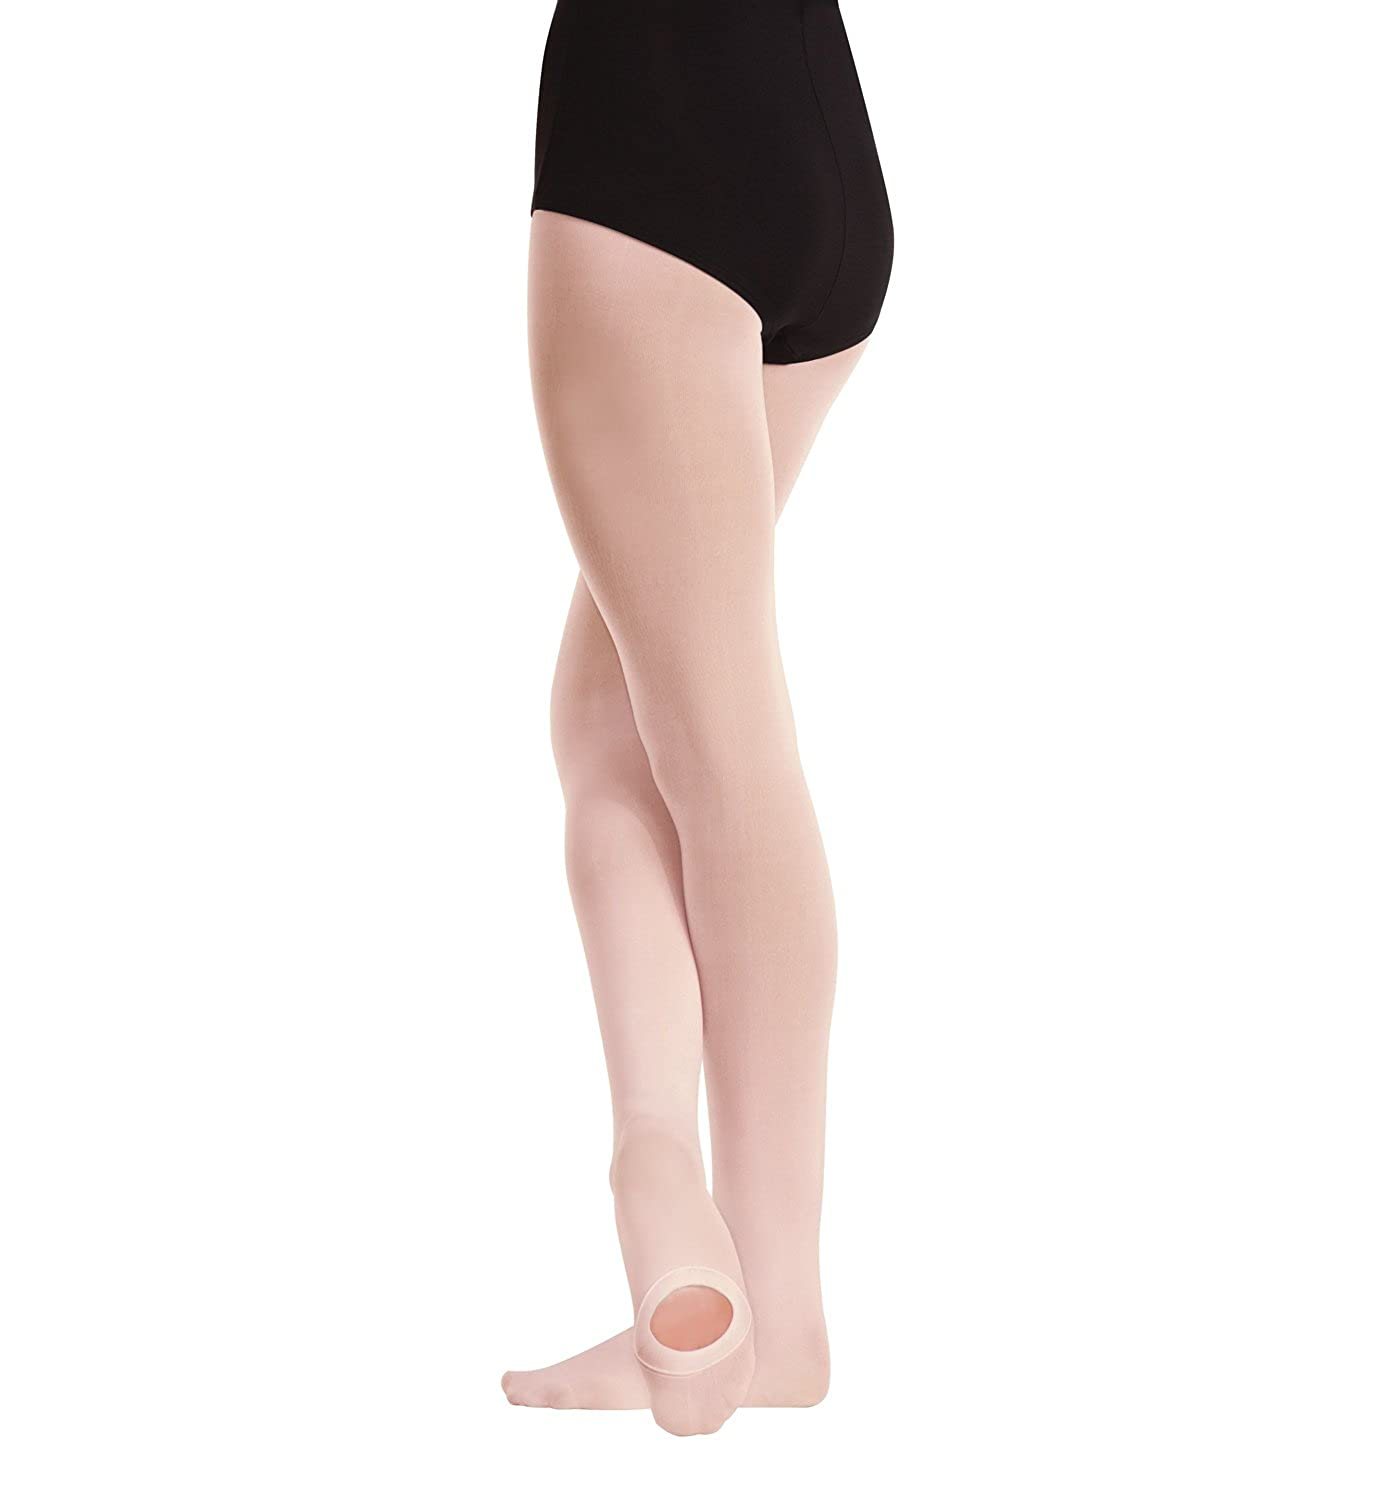 a325bd220a7e4 Amazon.com: Body Wrappers Women's Convertible Tights - A81: Clothing